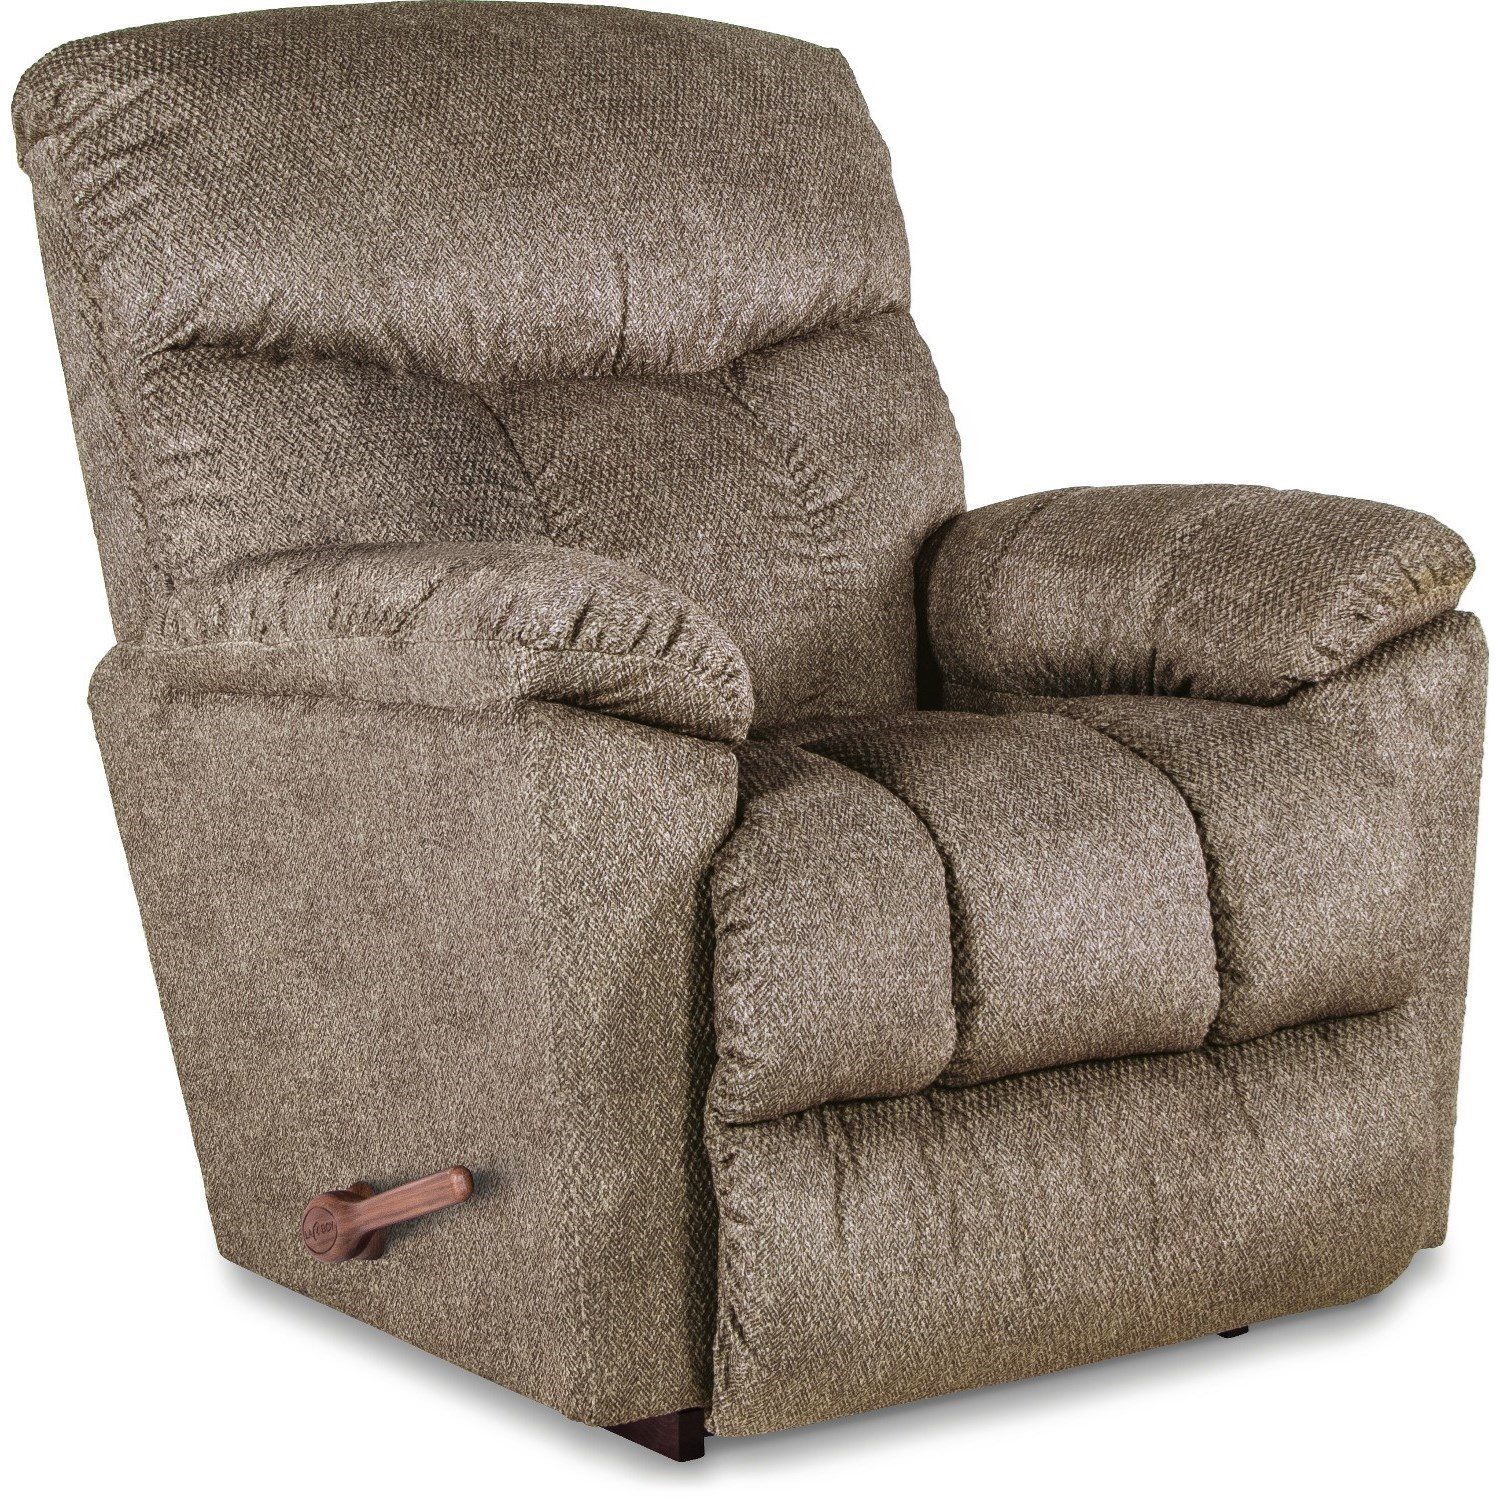 Morrison Wall Recliner by La-Z-Boy at Jordan's Home Furnishings